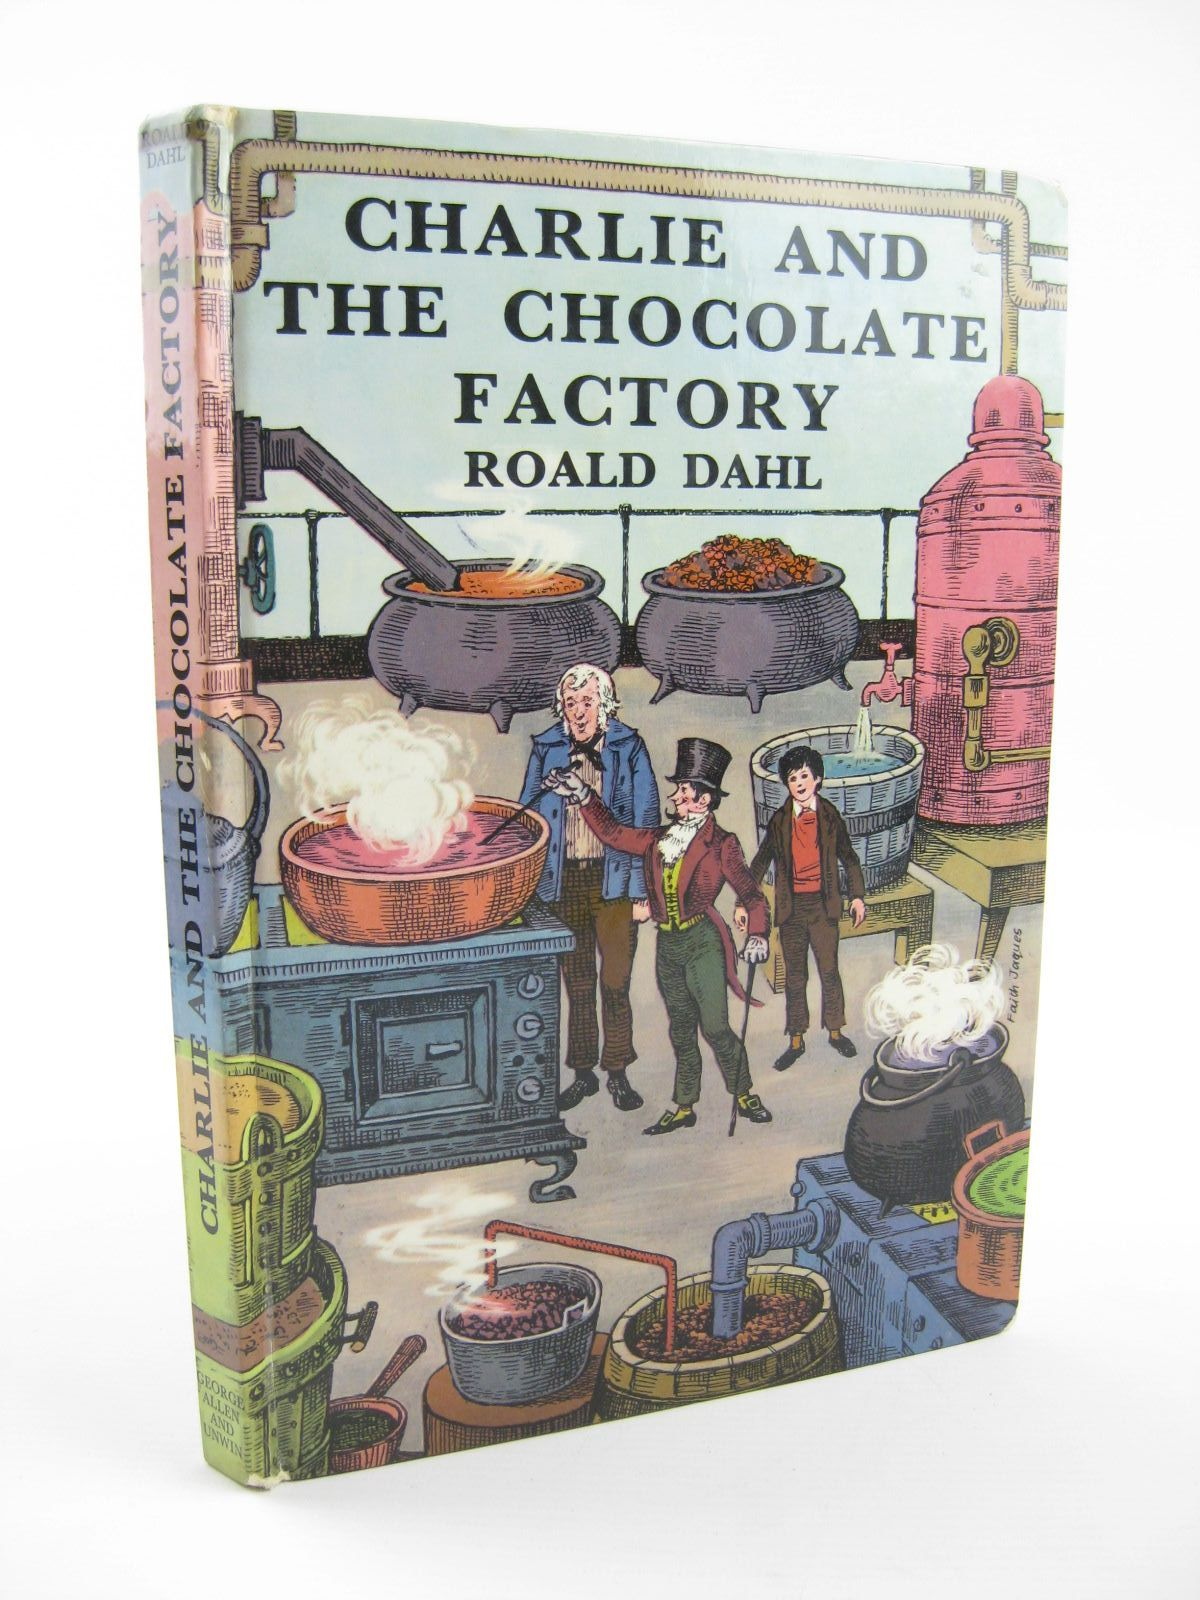 charlie and the chocolate factory written by dahl roald stock  photo of charlie and the chocolate factory written by dahl roald illustrated by jaques